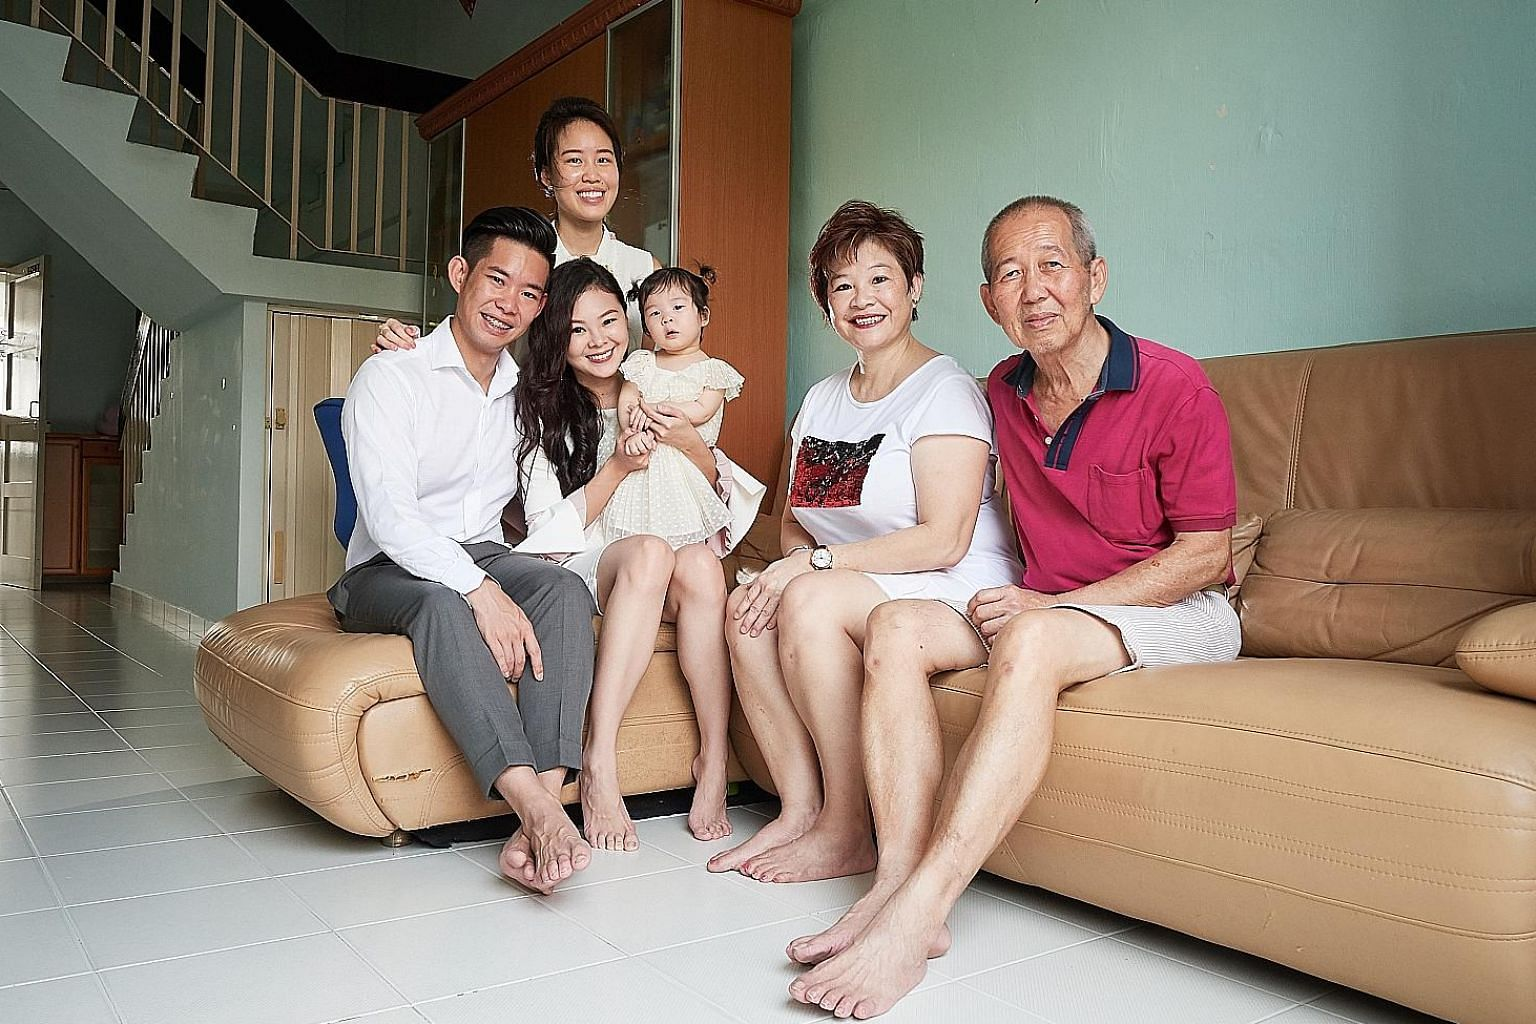 Mr Kenny Neo lives with (from left) his wife Vivian Chua, 26, one-year-old daughter Hailey, mother Poh Soo Fay, 58, father Jeffrey Neo, 66, and sister Debbie Neo, 28, (standing) in his parents' Housing Board maisonette near Heartland Mall in Kovan.